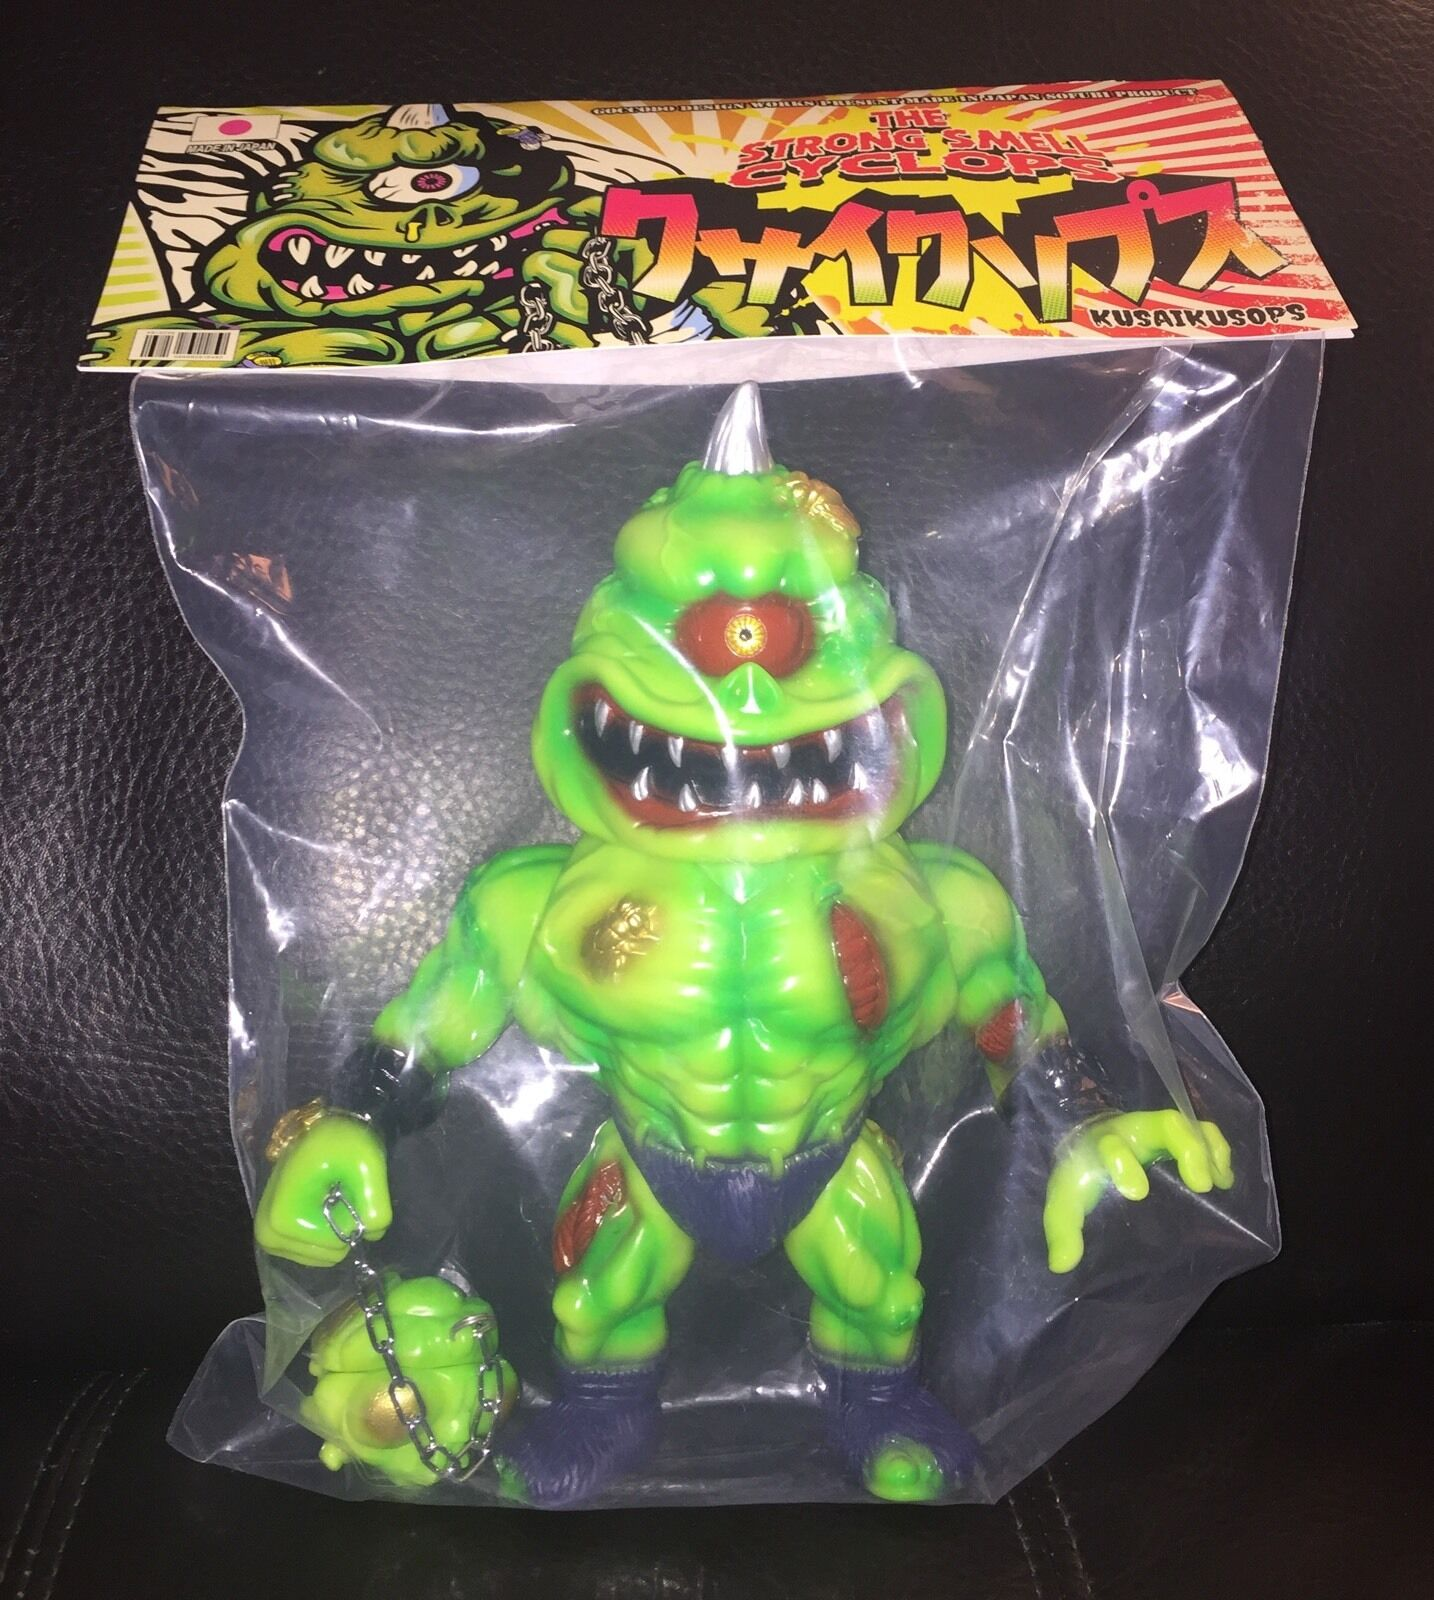 GOCCODO THE STRONG SMELL CYCLOPS GID KAIJU SOFUBI JAPAN DCON 2015 Punk Drunkers